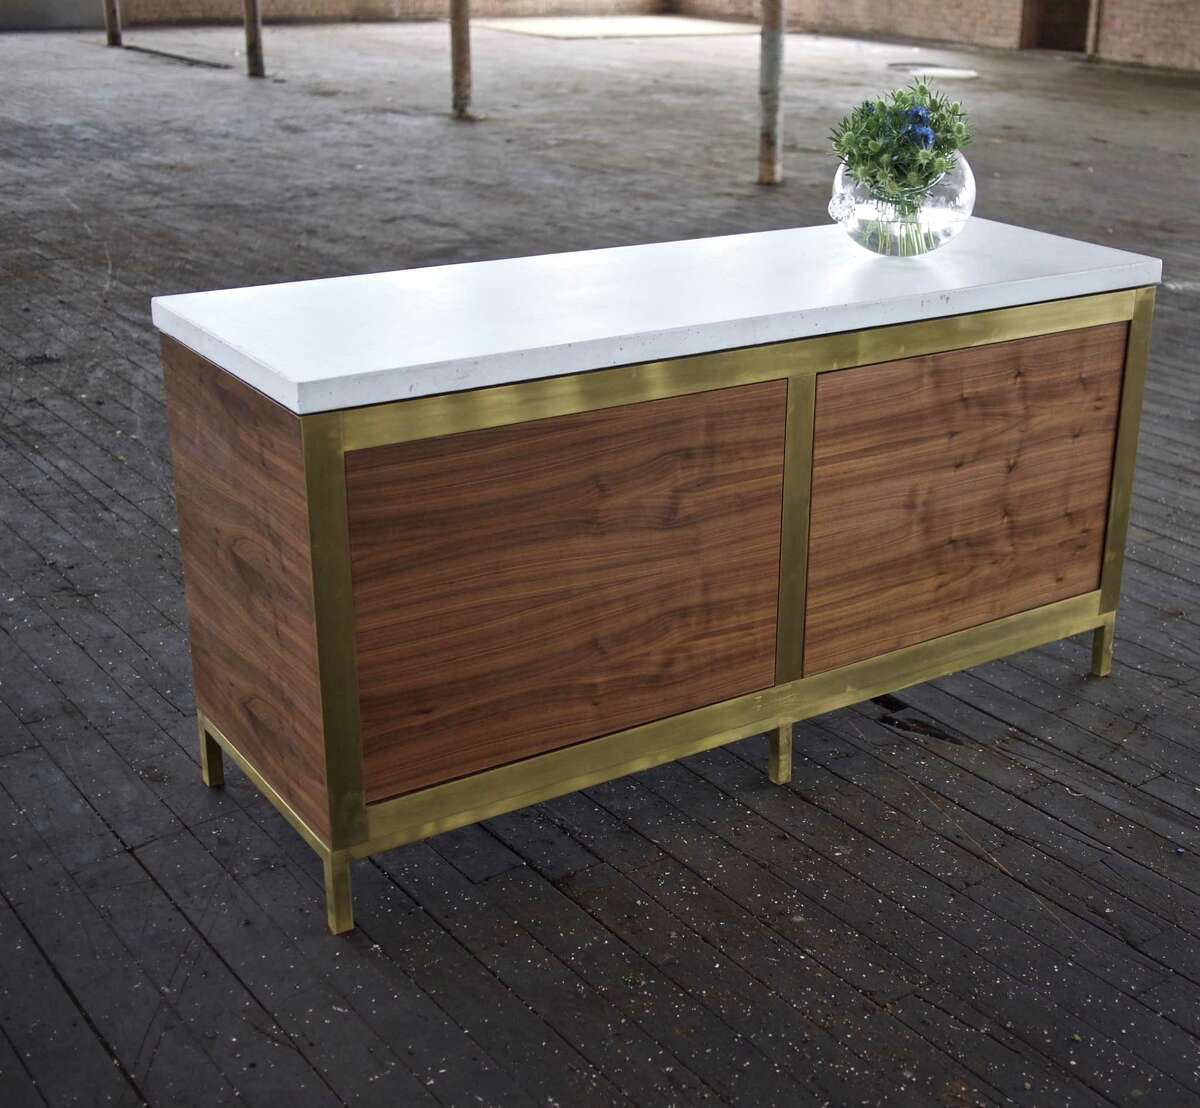 New: Elizabeth Ingram new furniture collection included this Fia credenza.